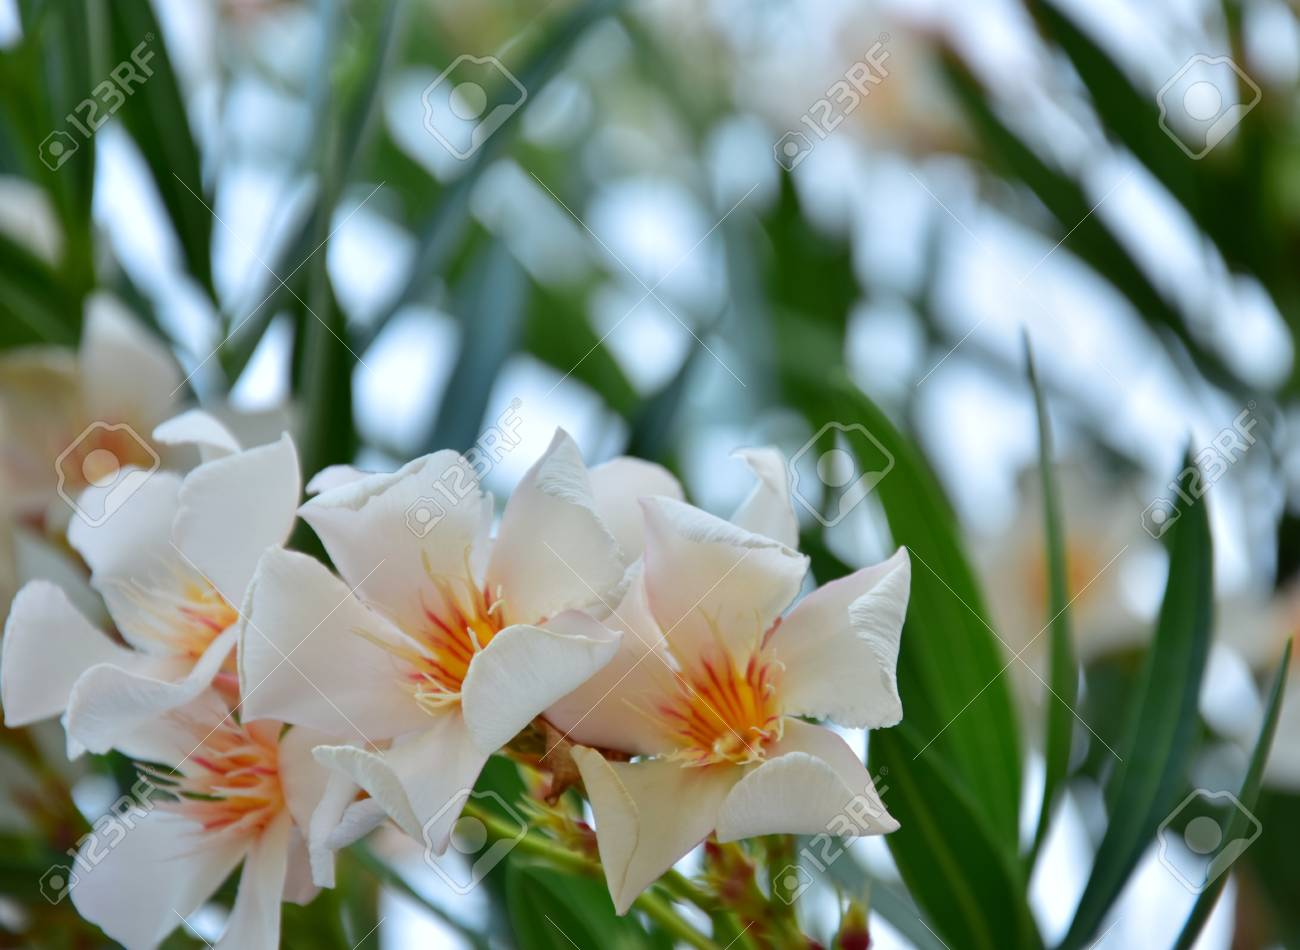 Oleander With White And Orange Flowers Shot During Summertime